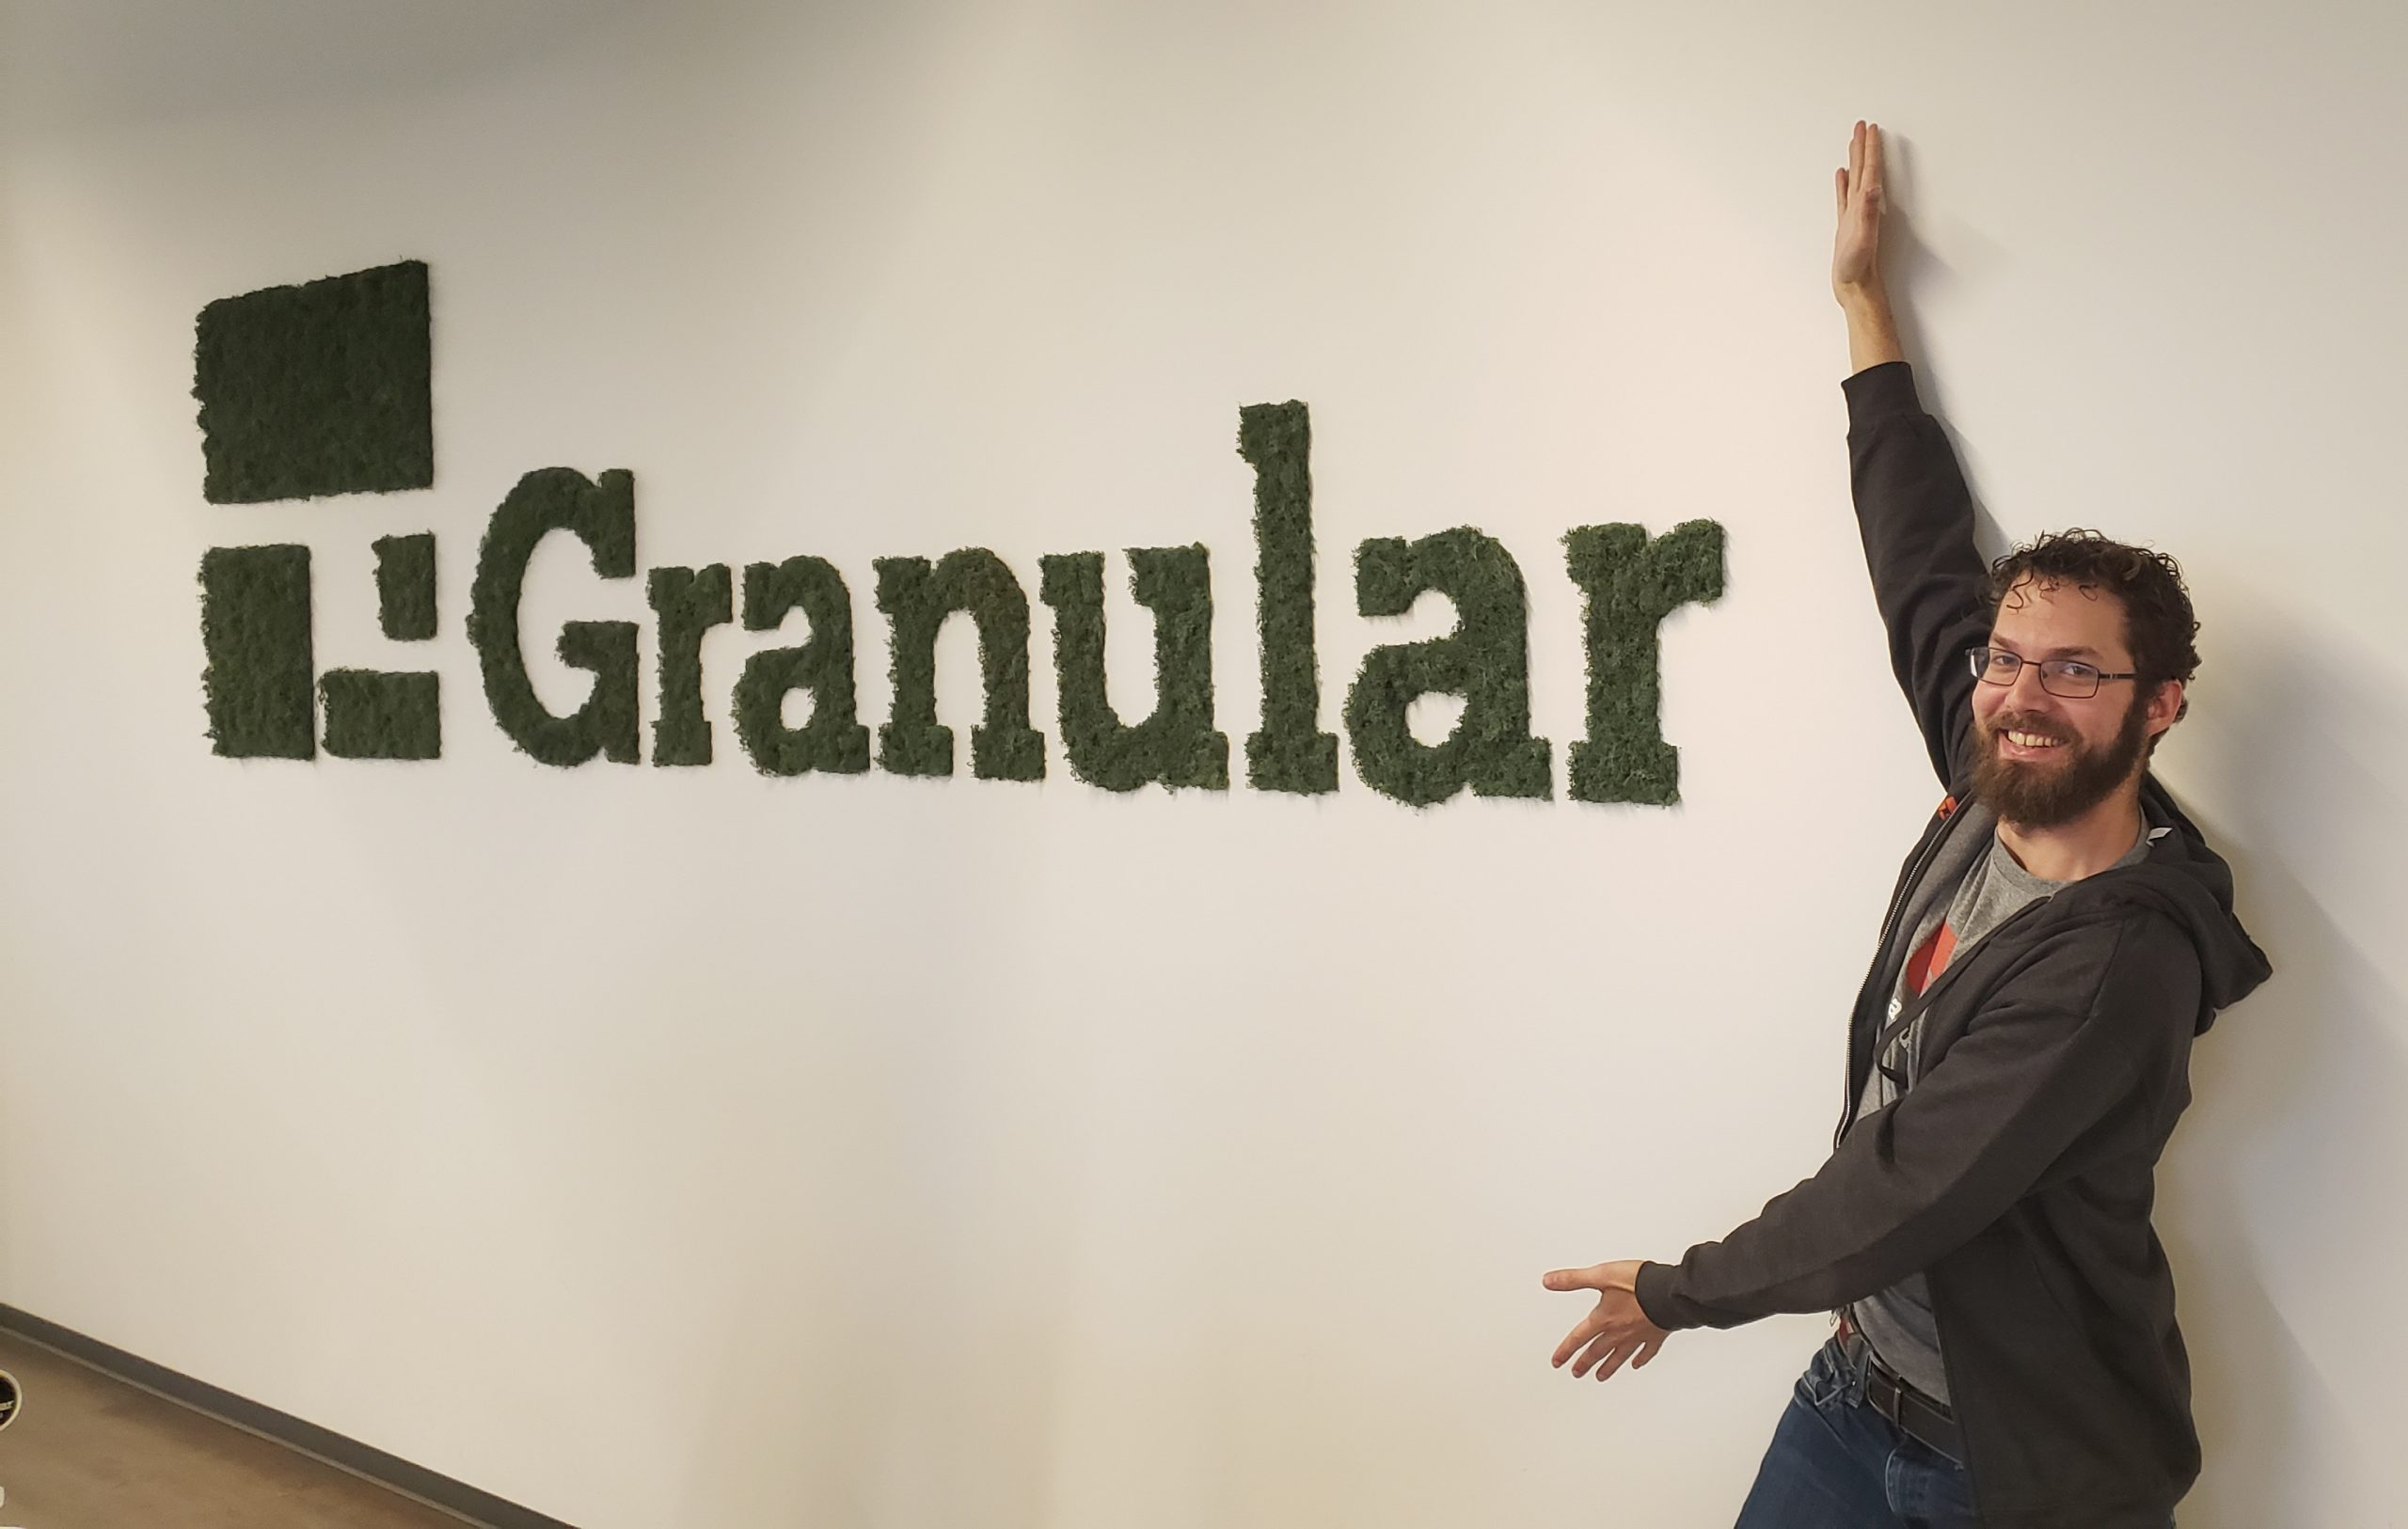 At the Granular office, my arms outstretched pointing at the logo